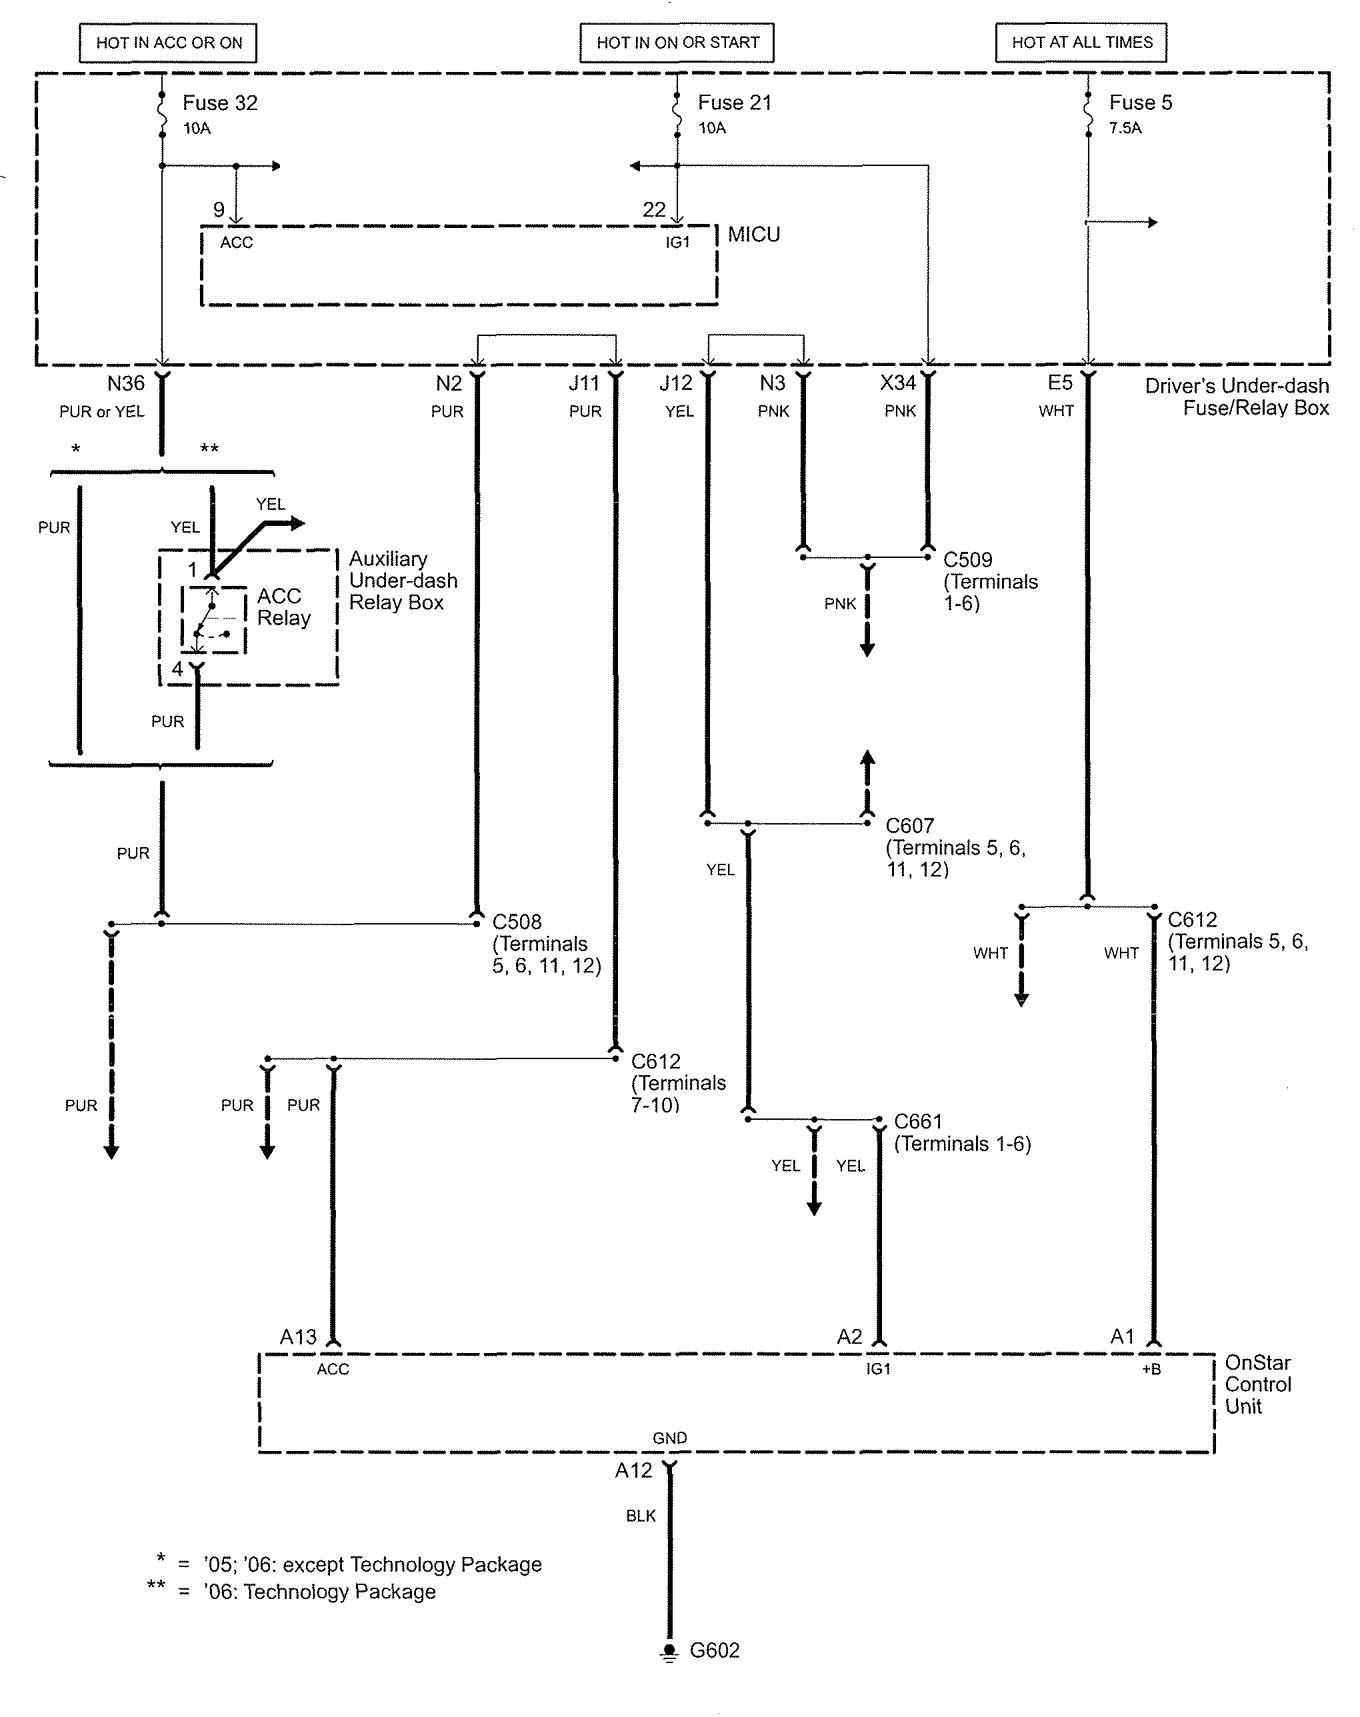 2005 crf50 wiring diagram architectural program and 2 acura rl diagrams onstar system